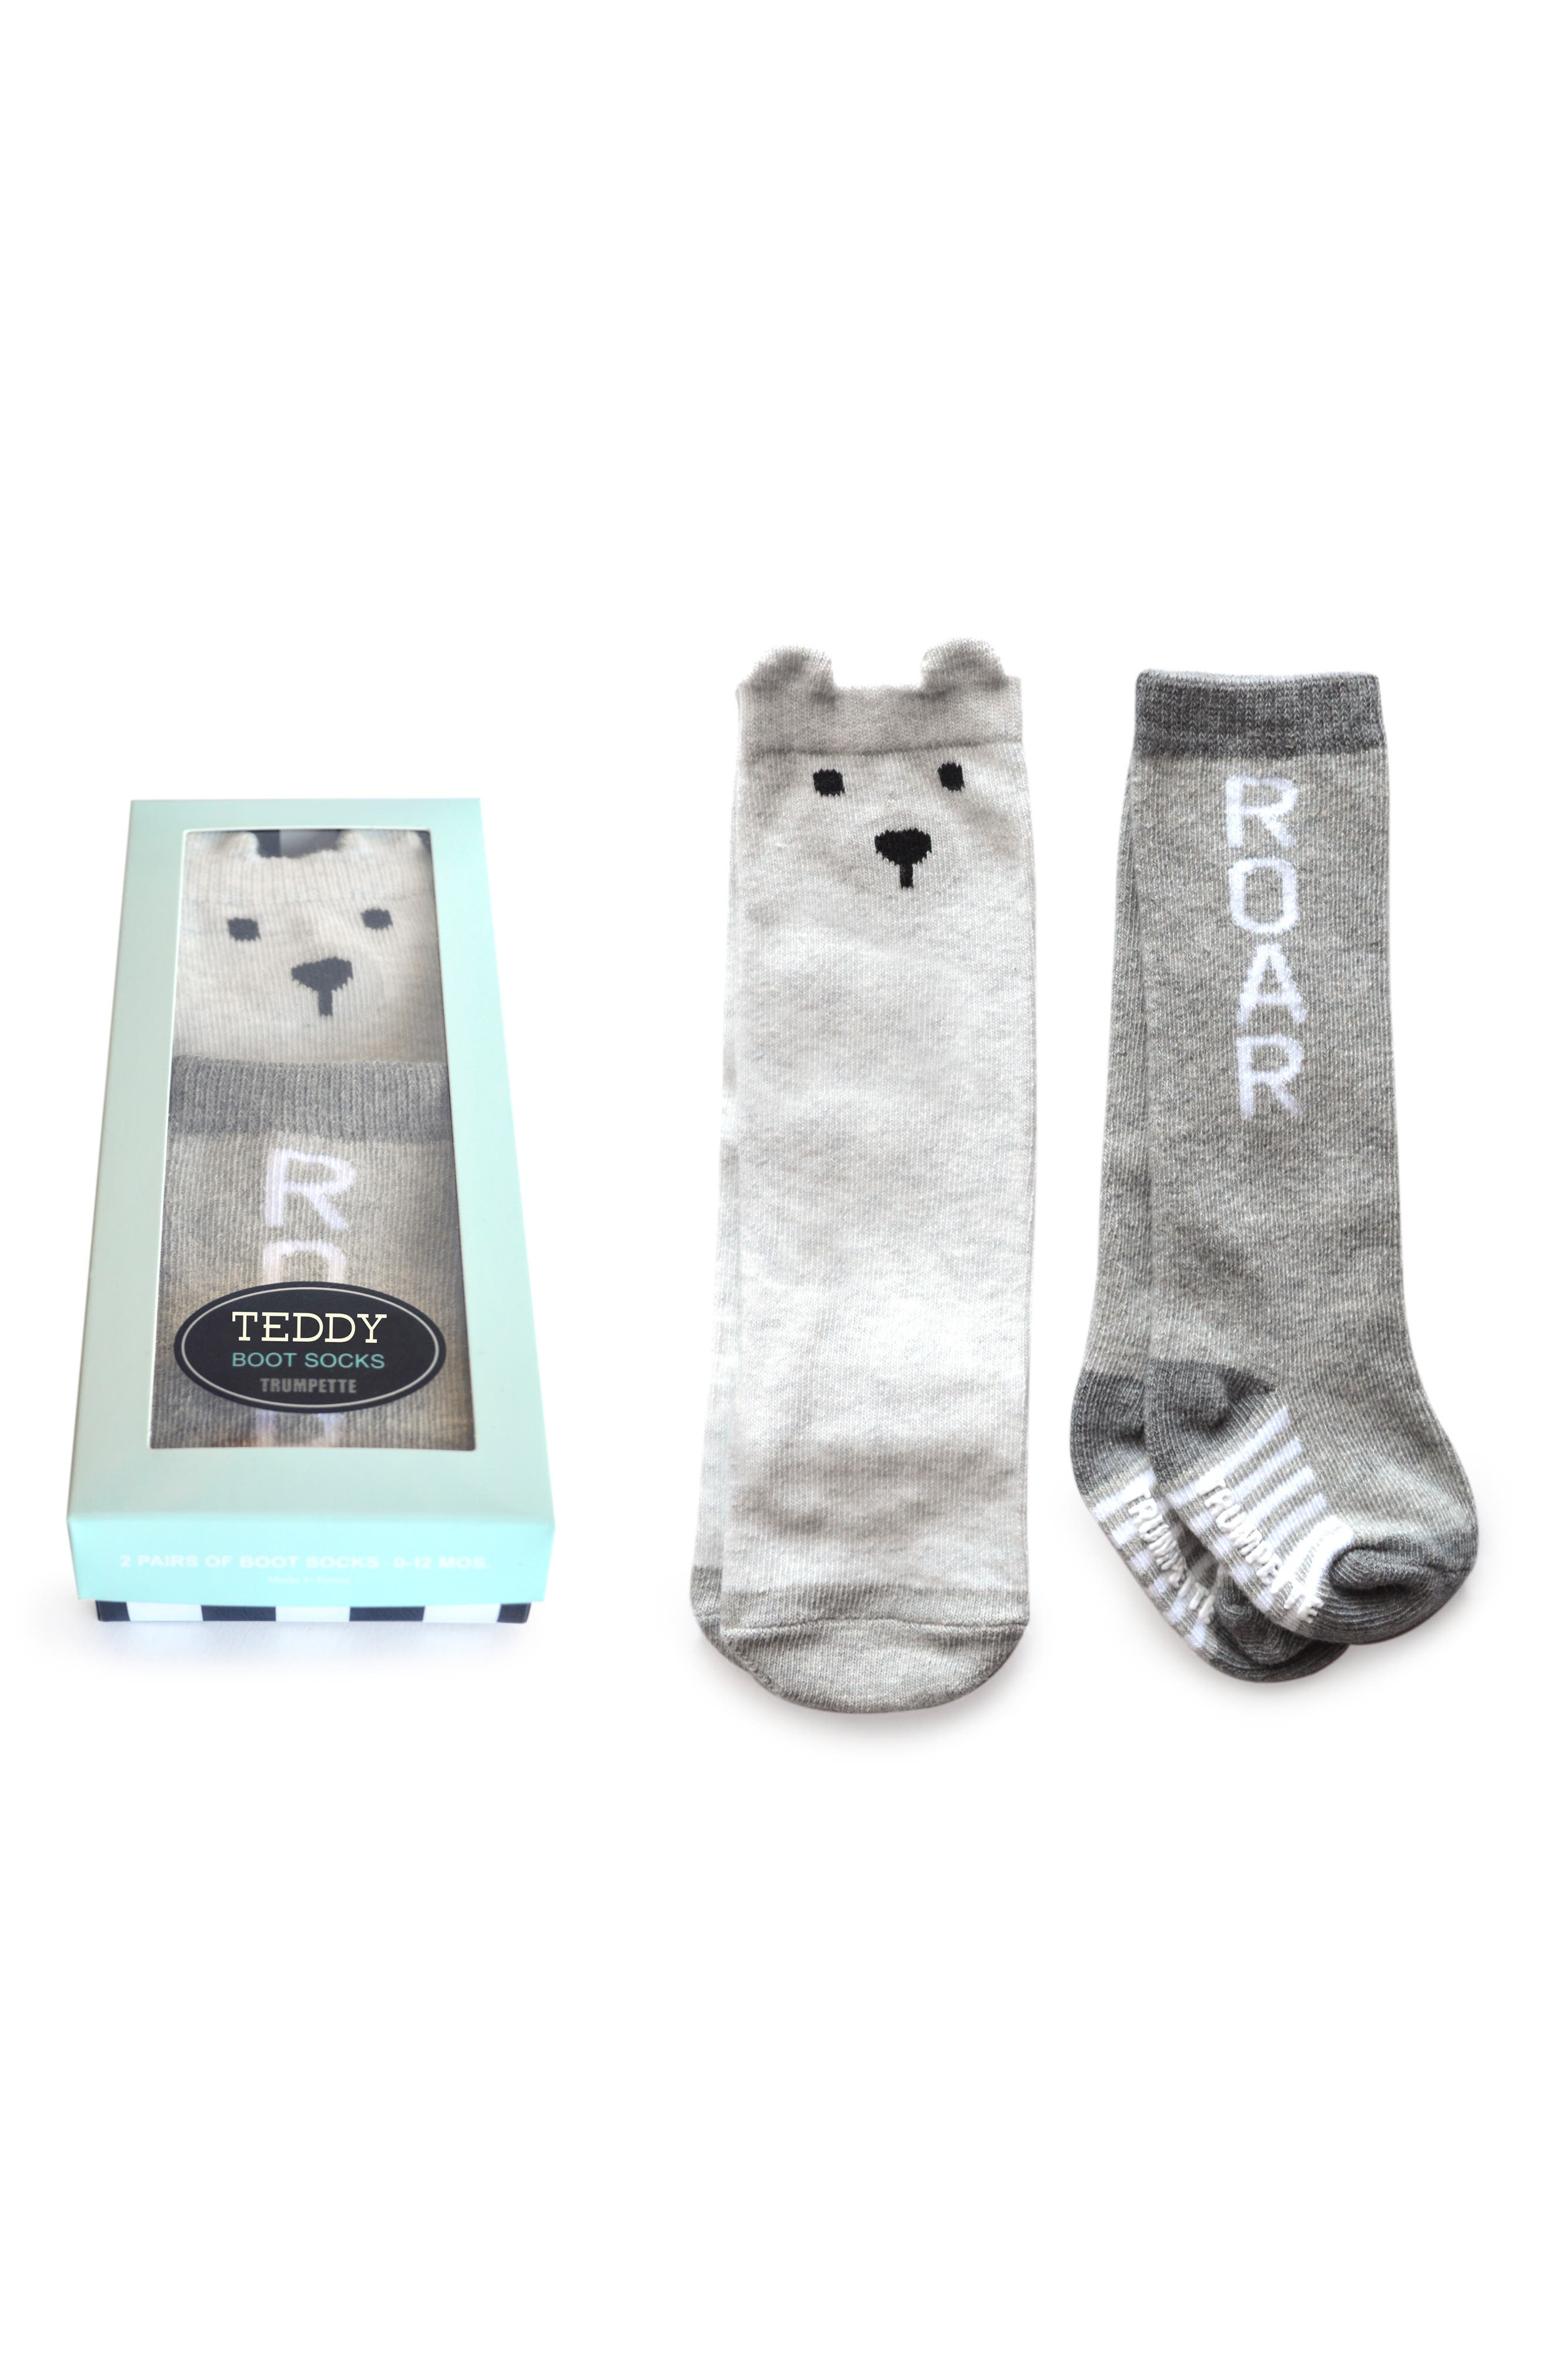 Teddy 2-Pack Boot Socks,                             Main thumbnail 1, color,                             021